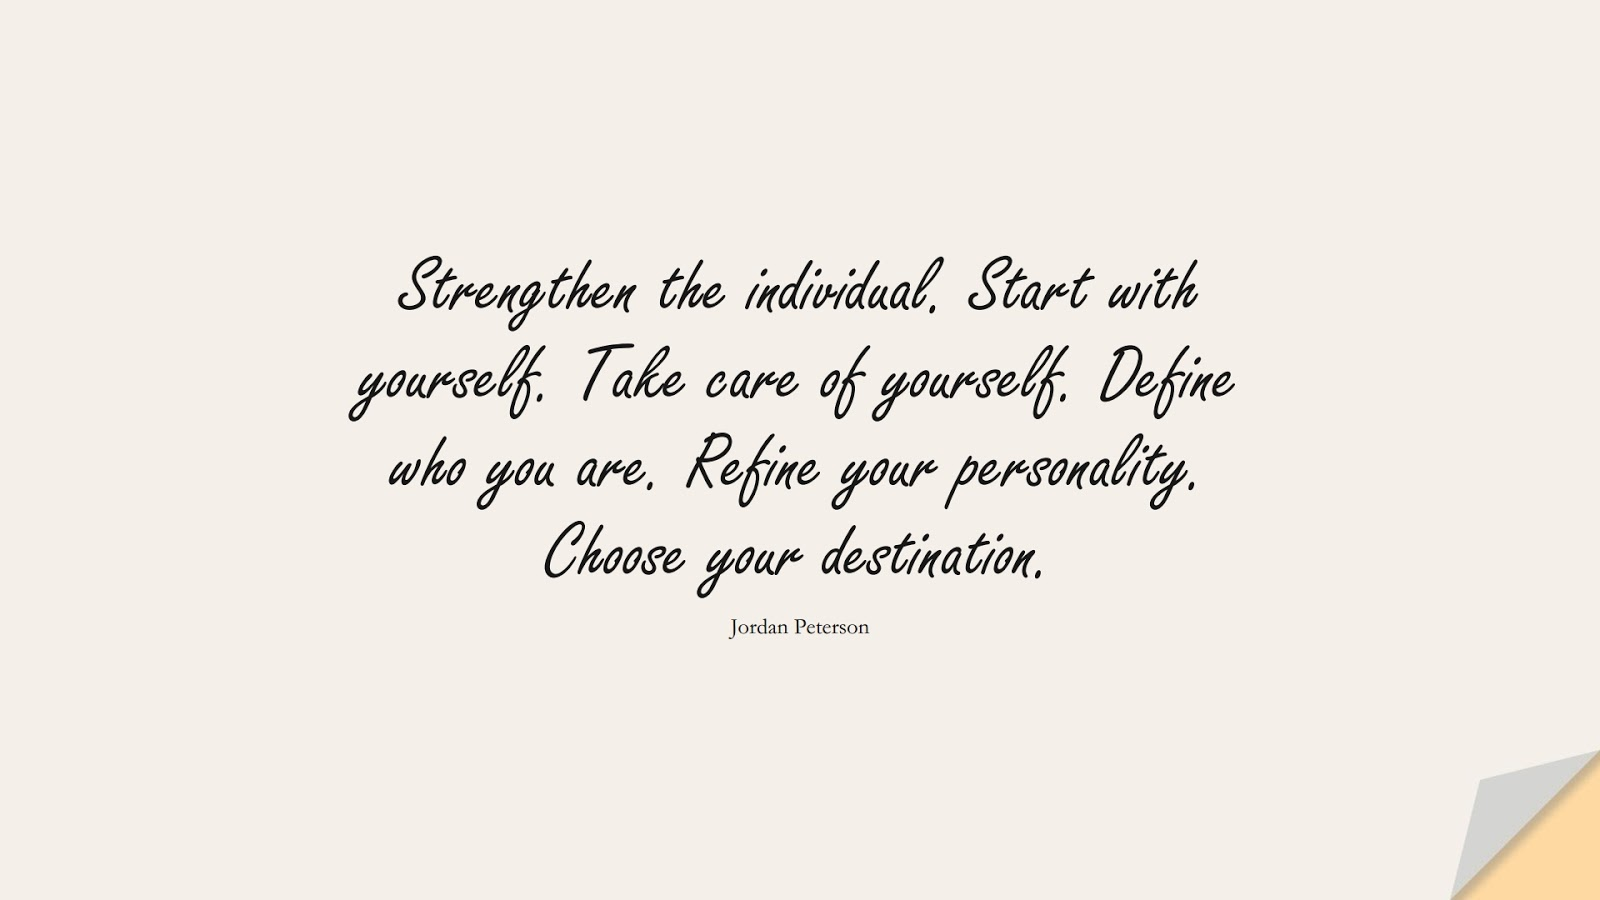 Strengthen the individual. Start with yourself. Take care of yourself. Define who you are. Refine your personality. Choose your destination. (Jordan Peterson);  #BeYourselfQuotes